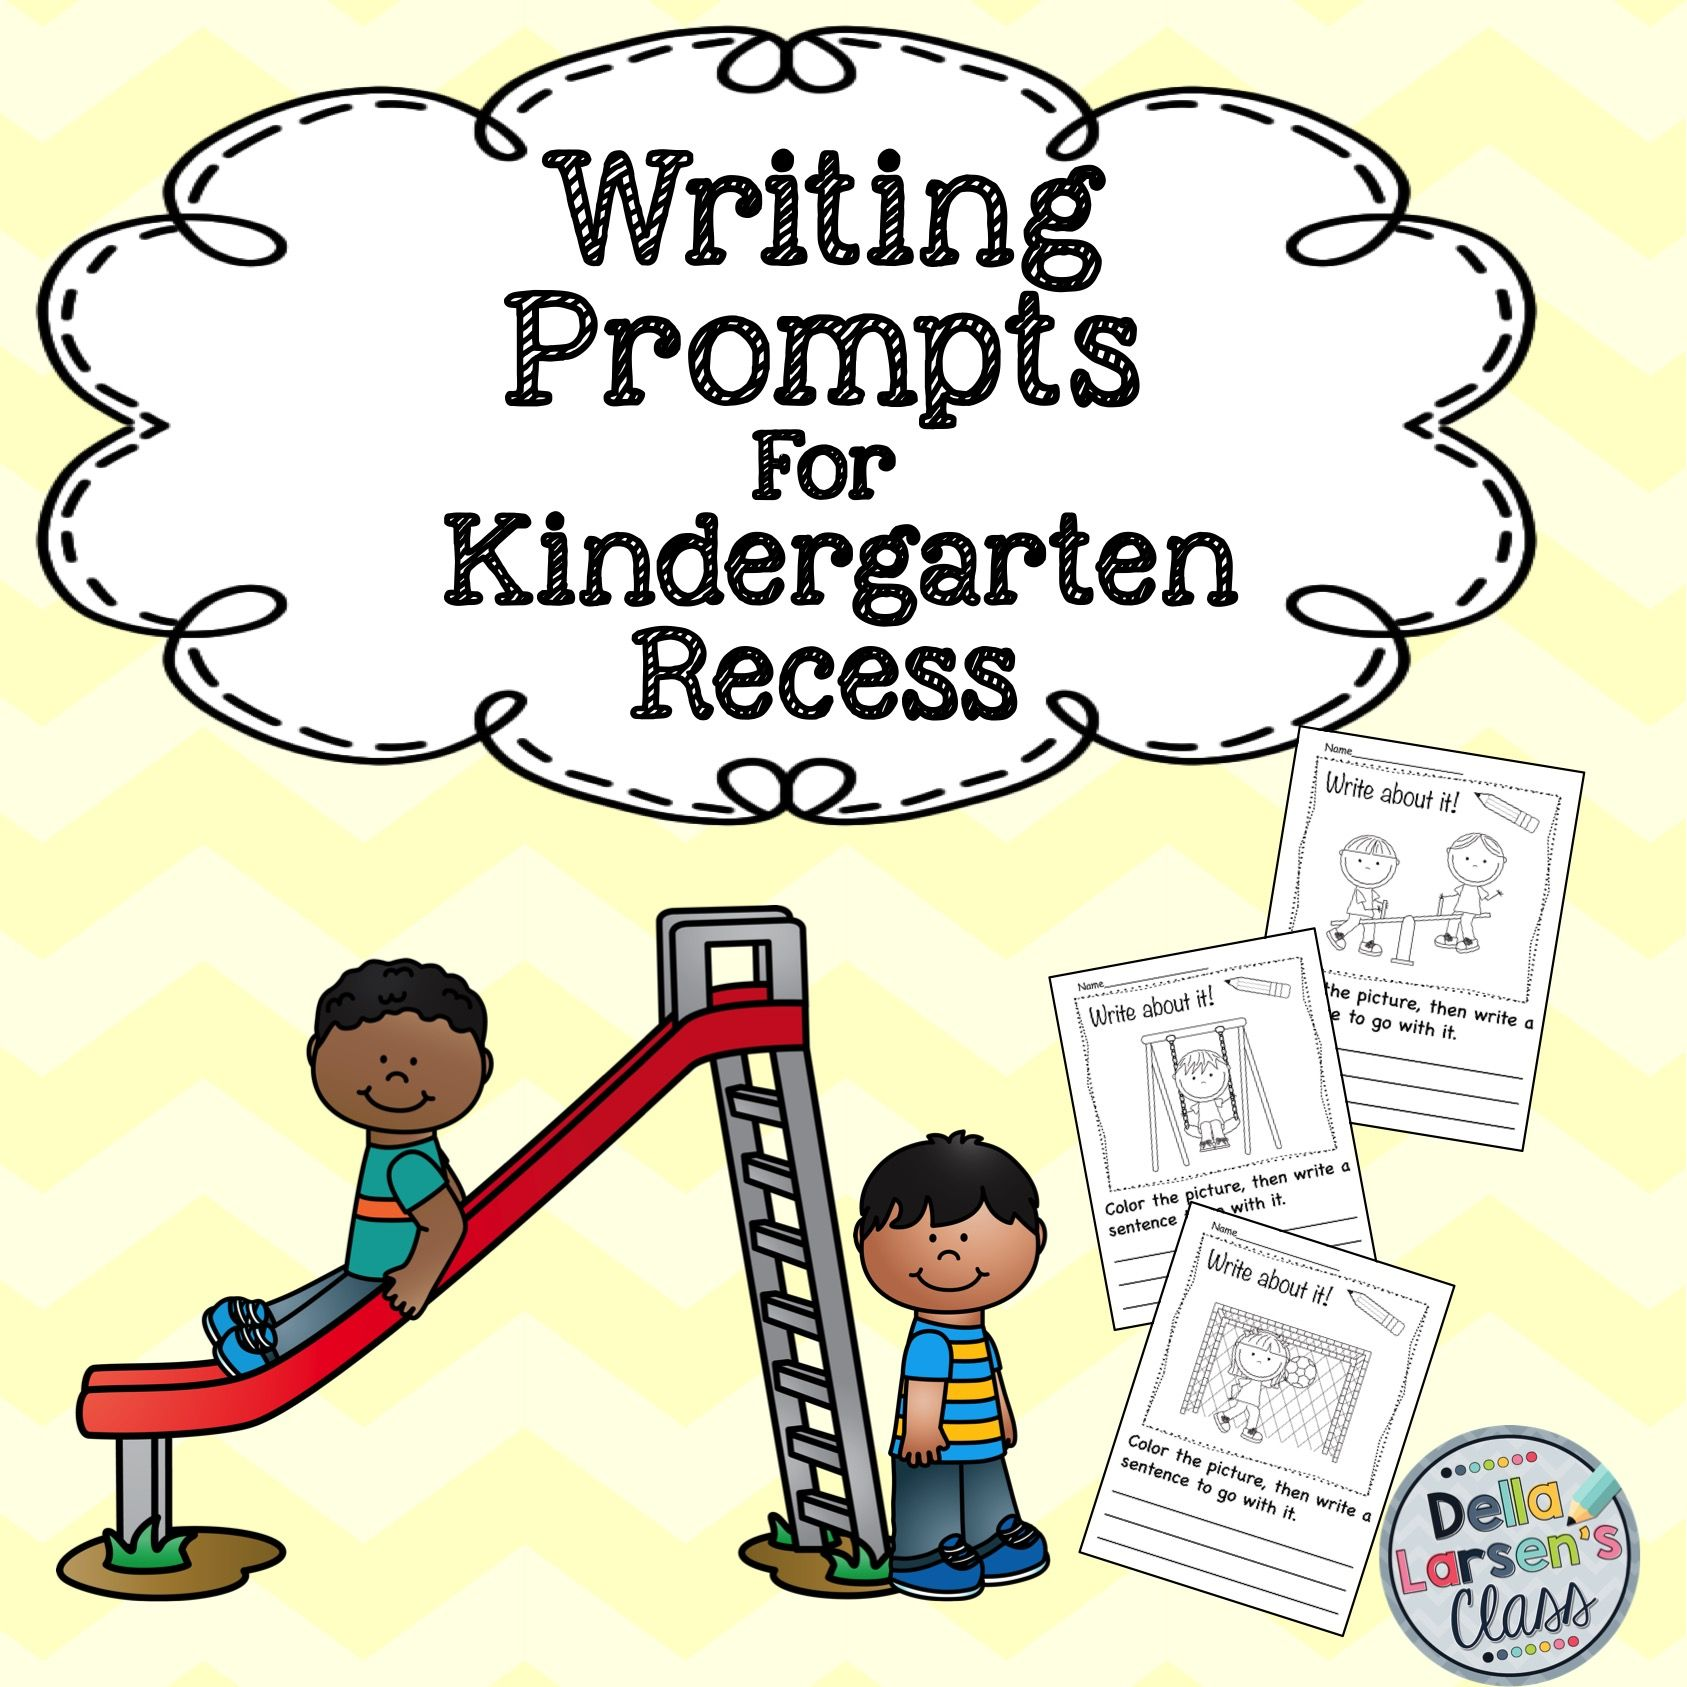 Writing Prompts For Kindergarten Recess